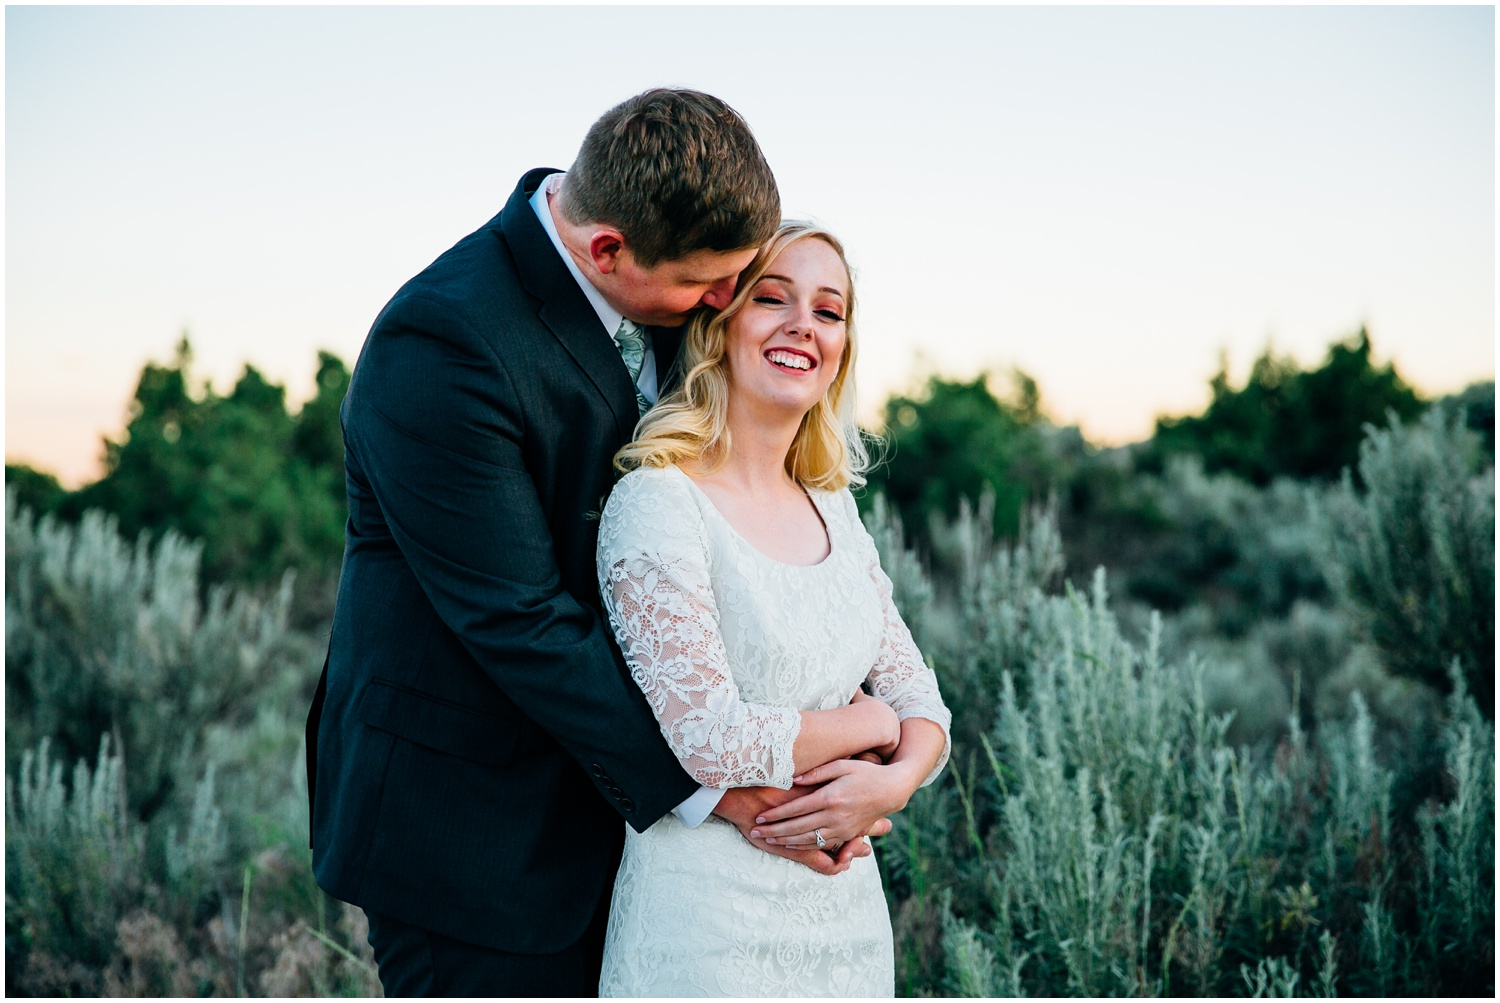 saint-anthony-sand-dunes-bridals-idaho-engagements-colorado-wyoming-wedding-photographer_0752.jpg